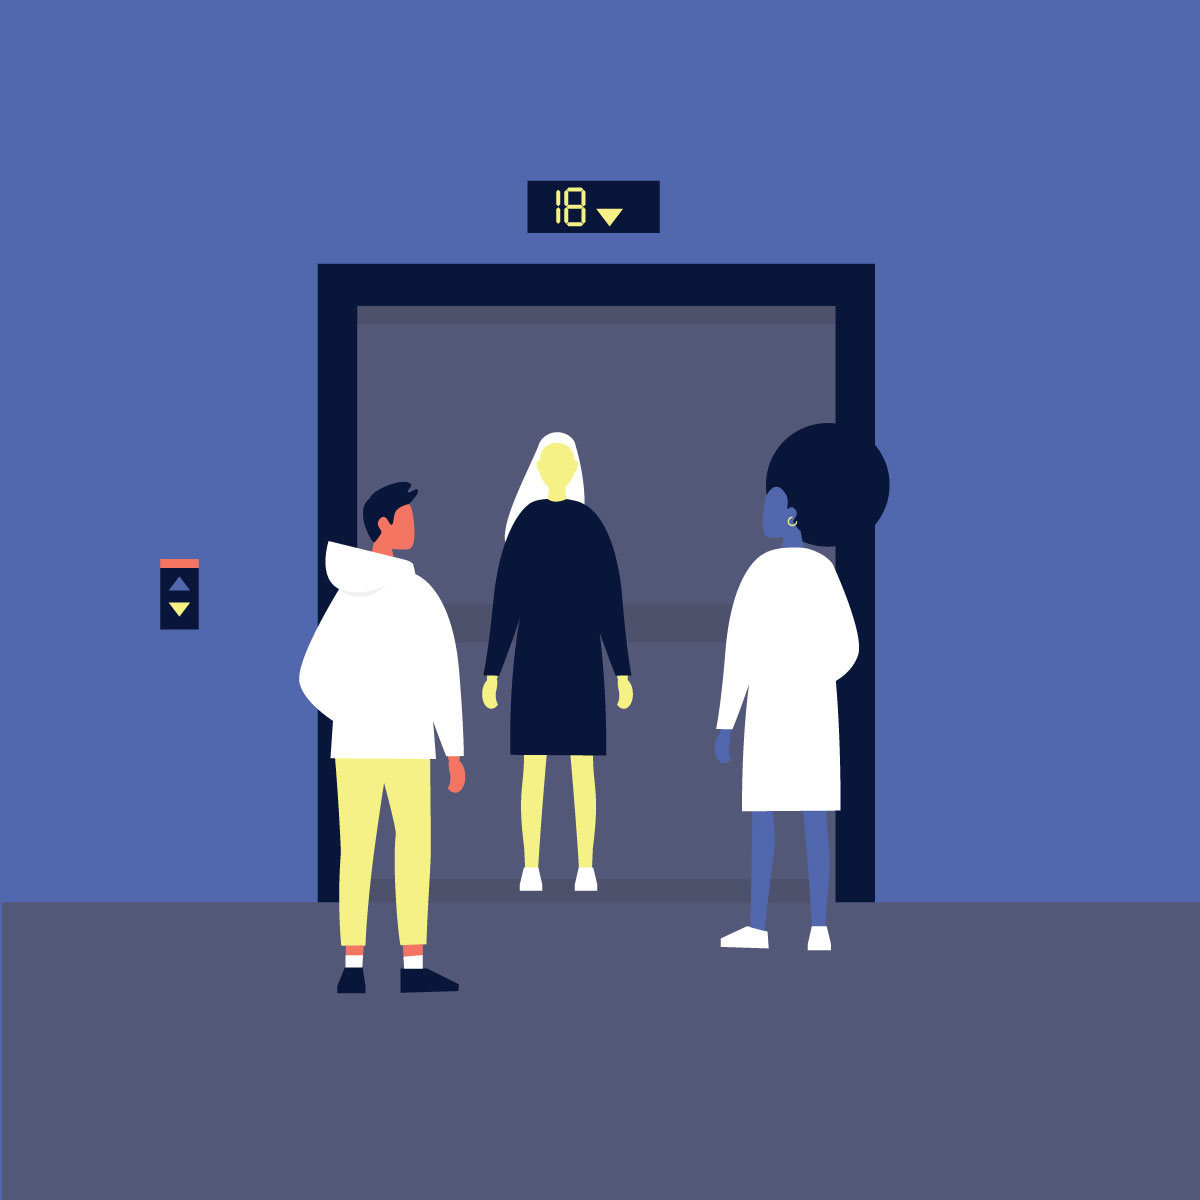 Illustration of people heading into an elevator.